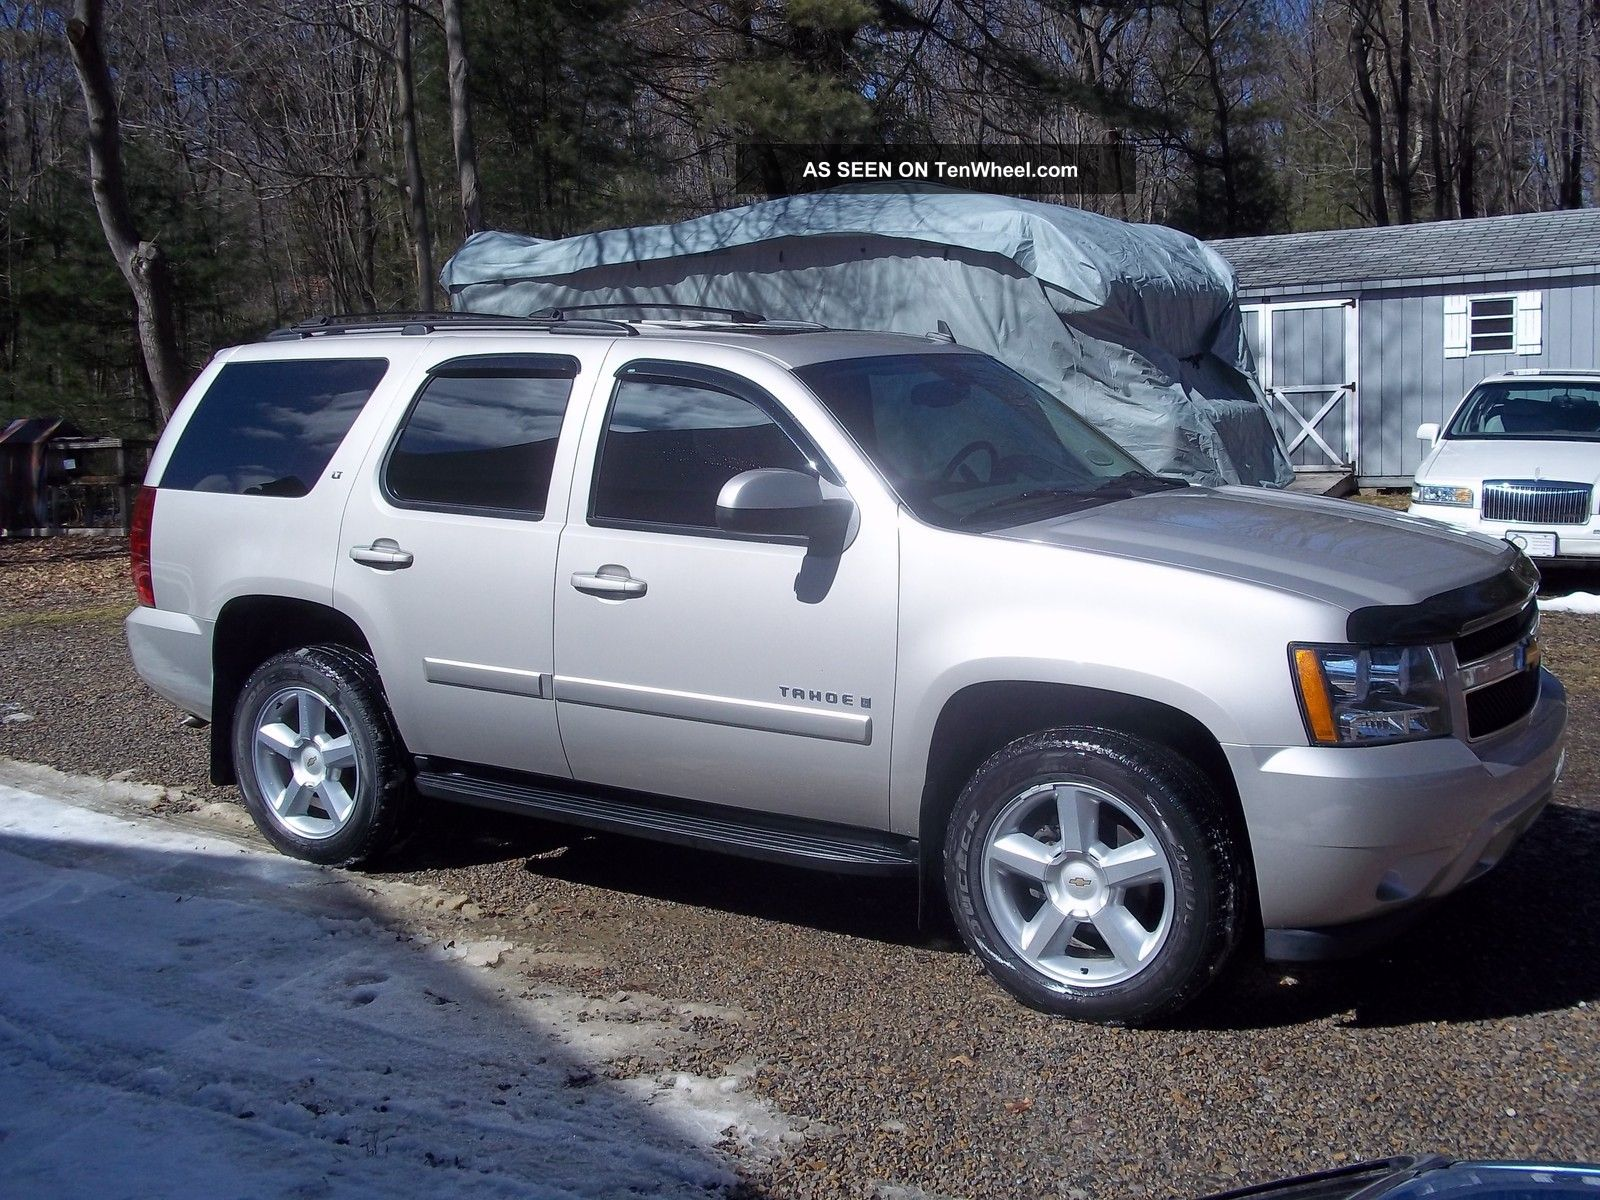 2008 chevy tahoe 4x4. Black Bedroom Furniture Sets. Home Design Ideas